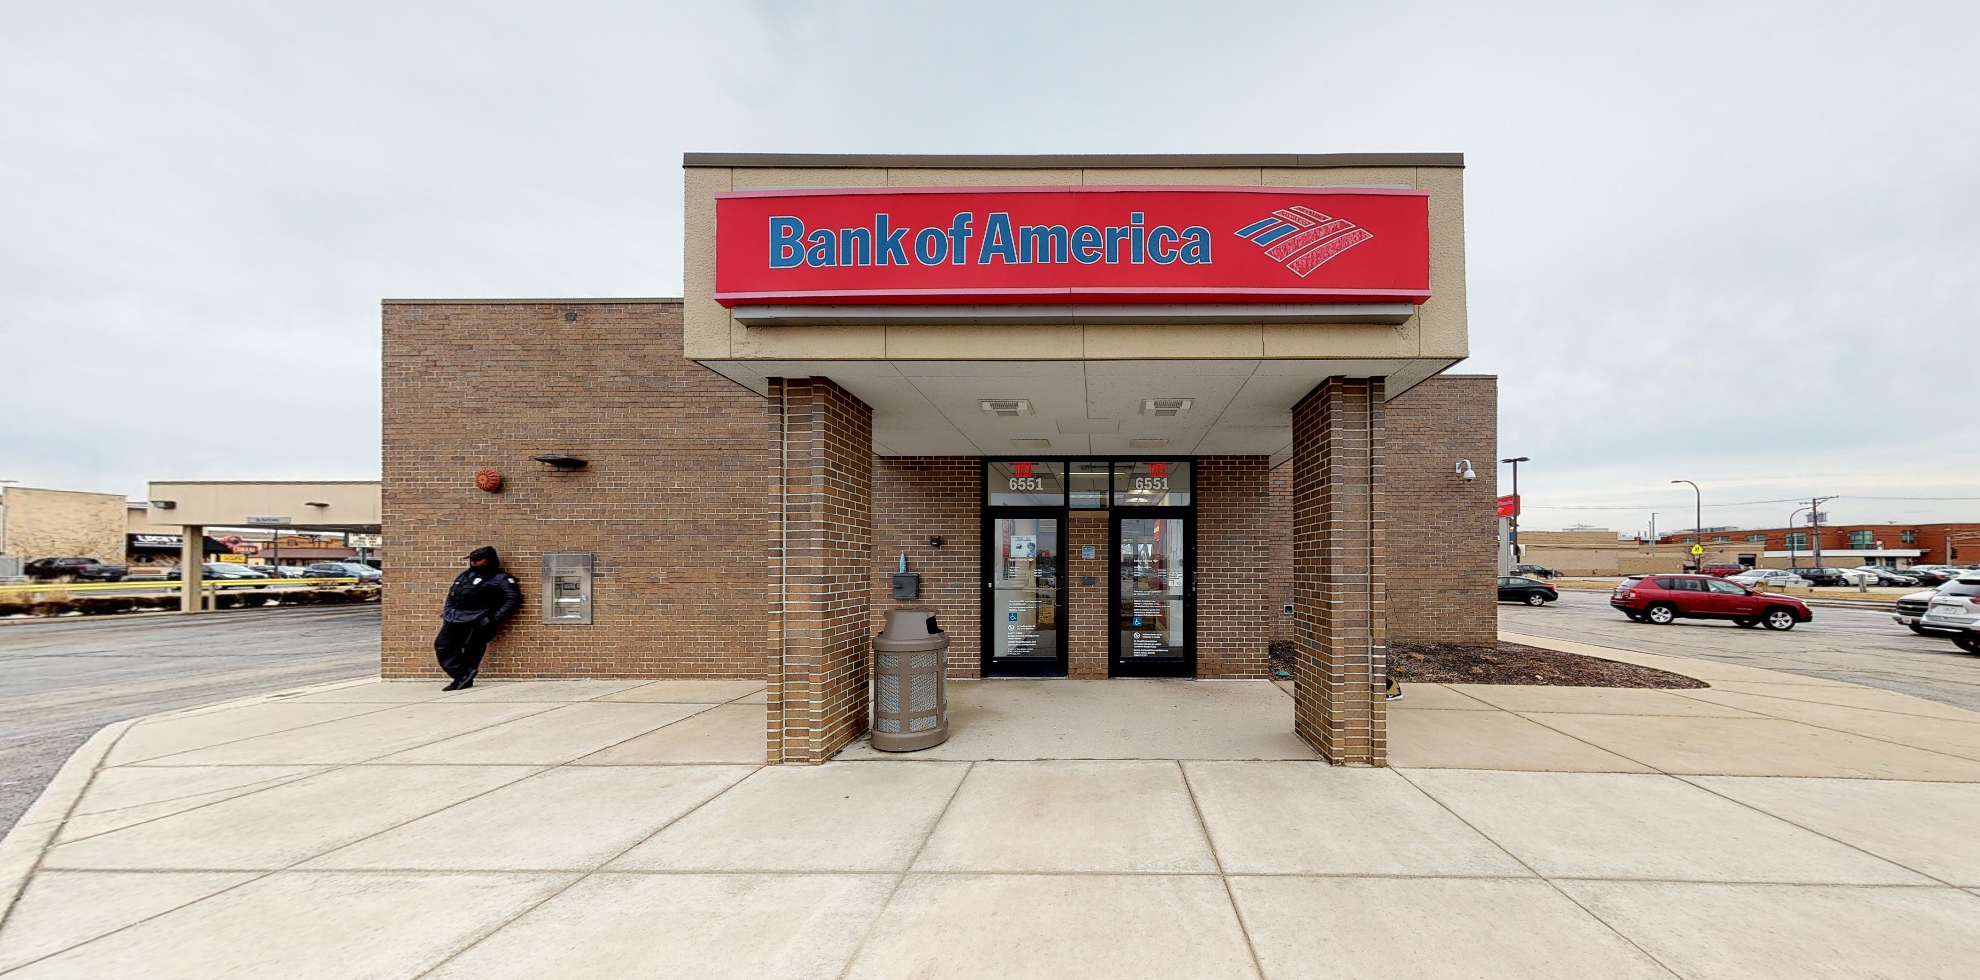 Bank of America financial center with drive-thru ATM | 6551 W 95th St, Chicago Ridge, IL 60415